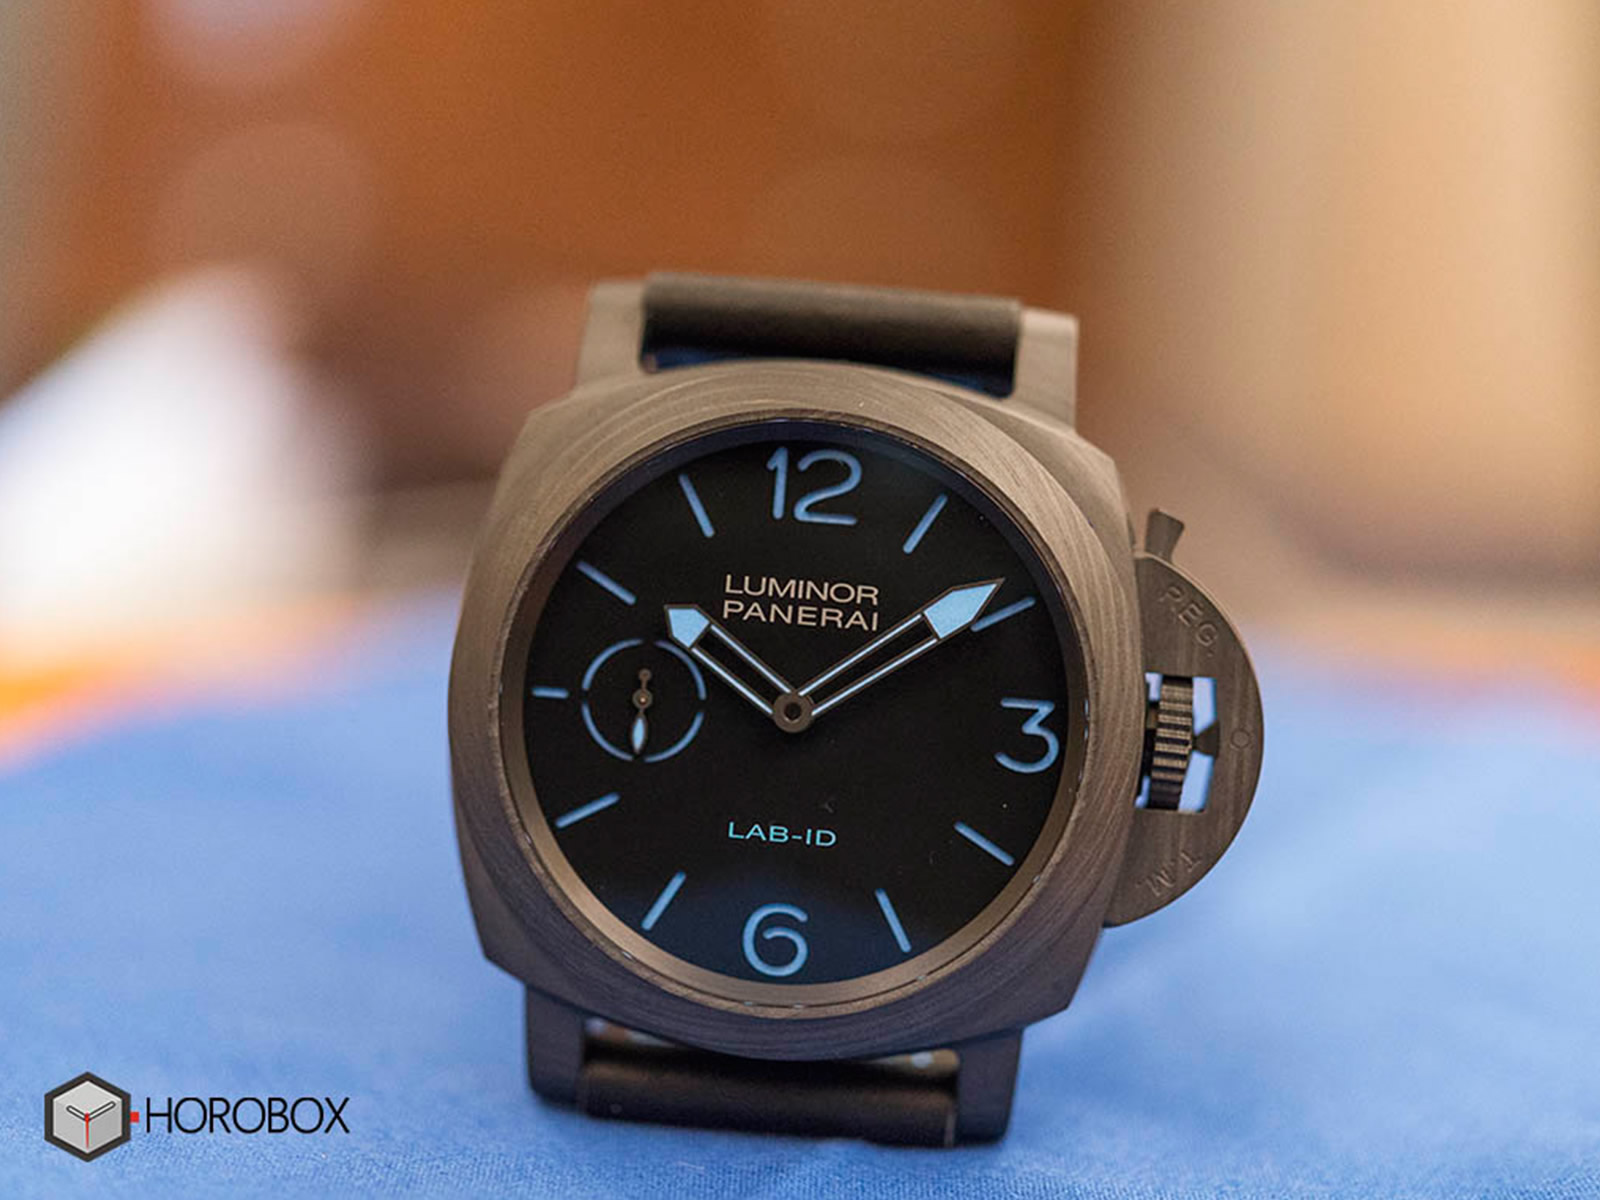 pam700-panerai-luminor-lab-id-1-.jpg